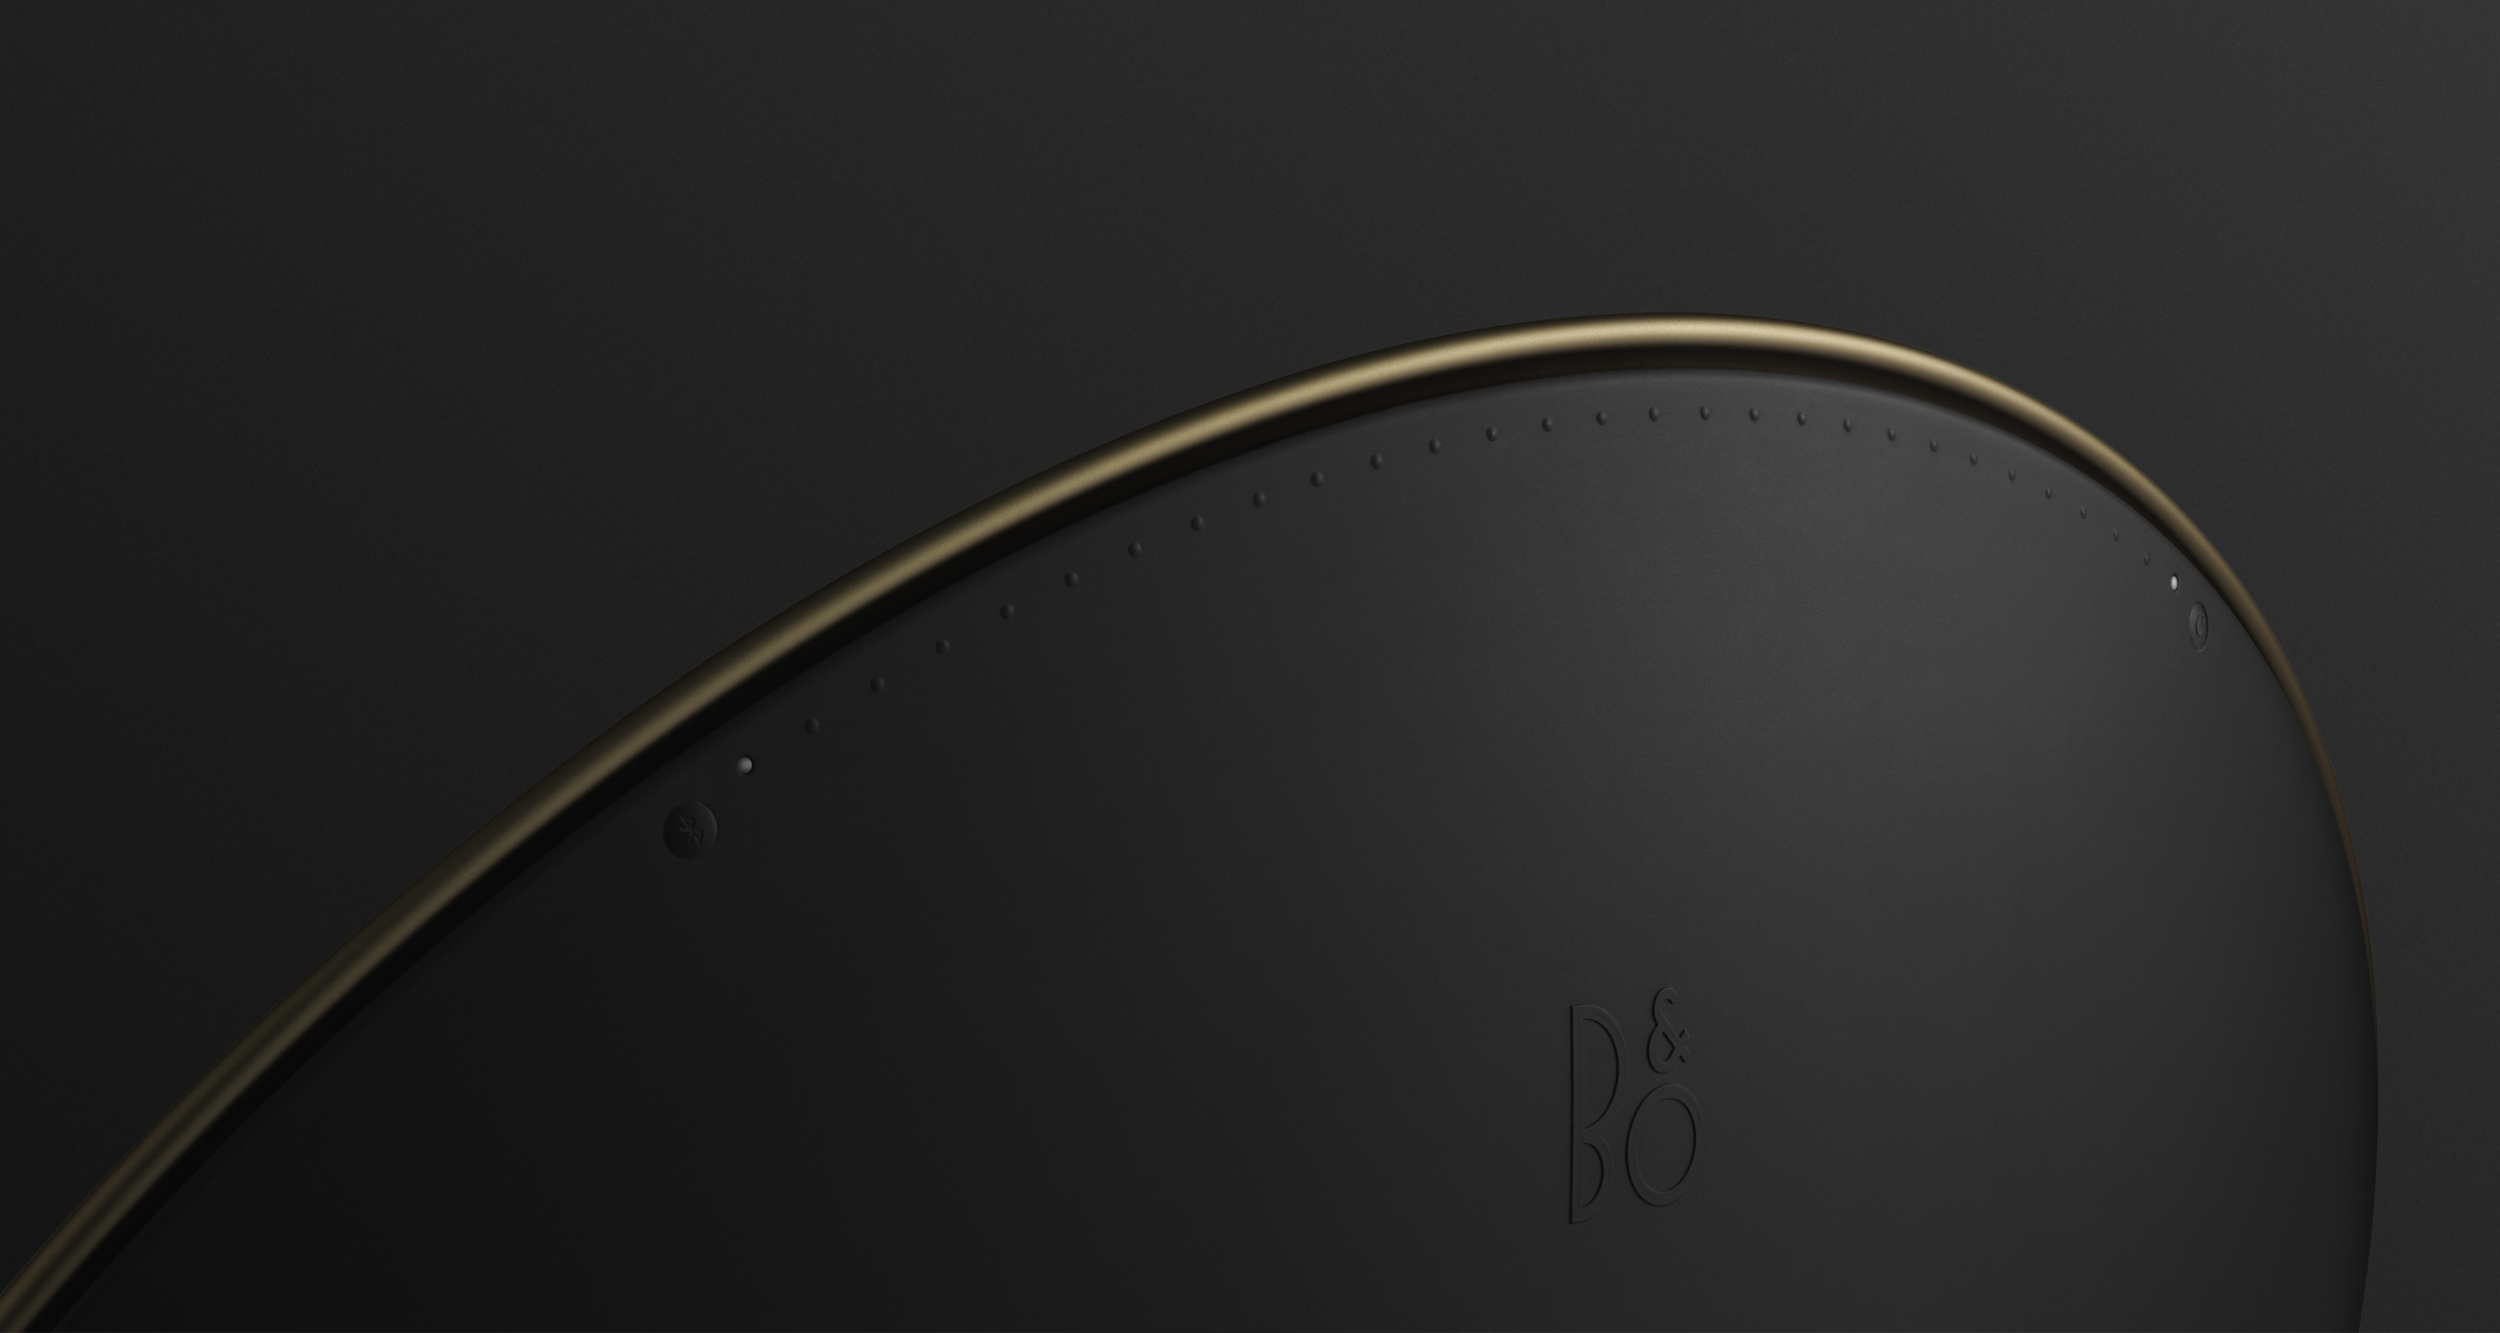 Beoplay_case_1.png